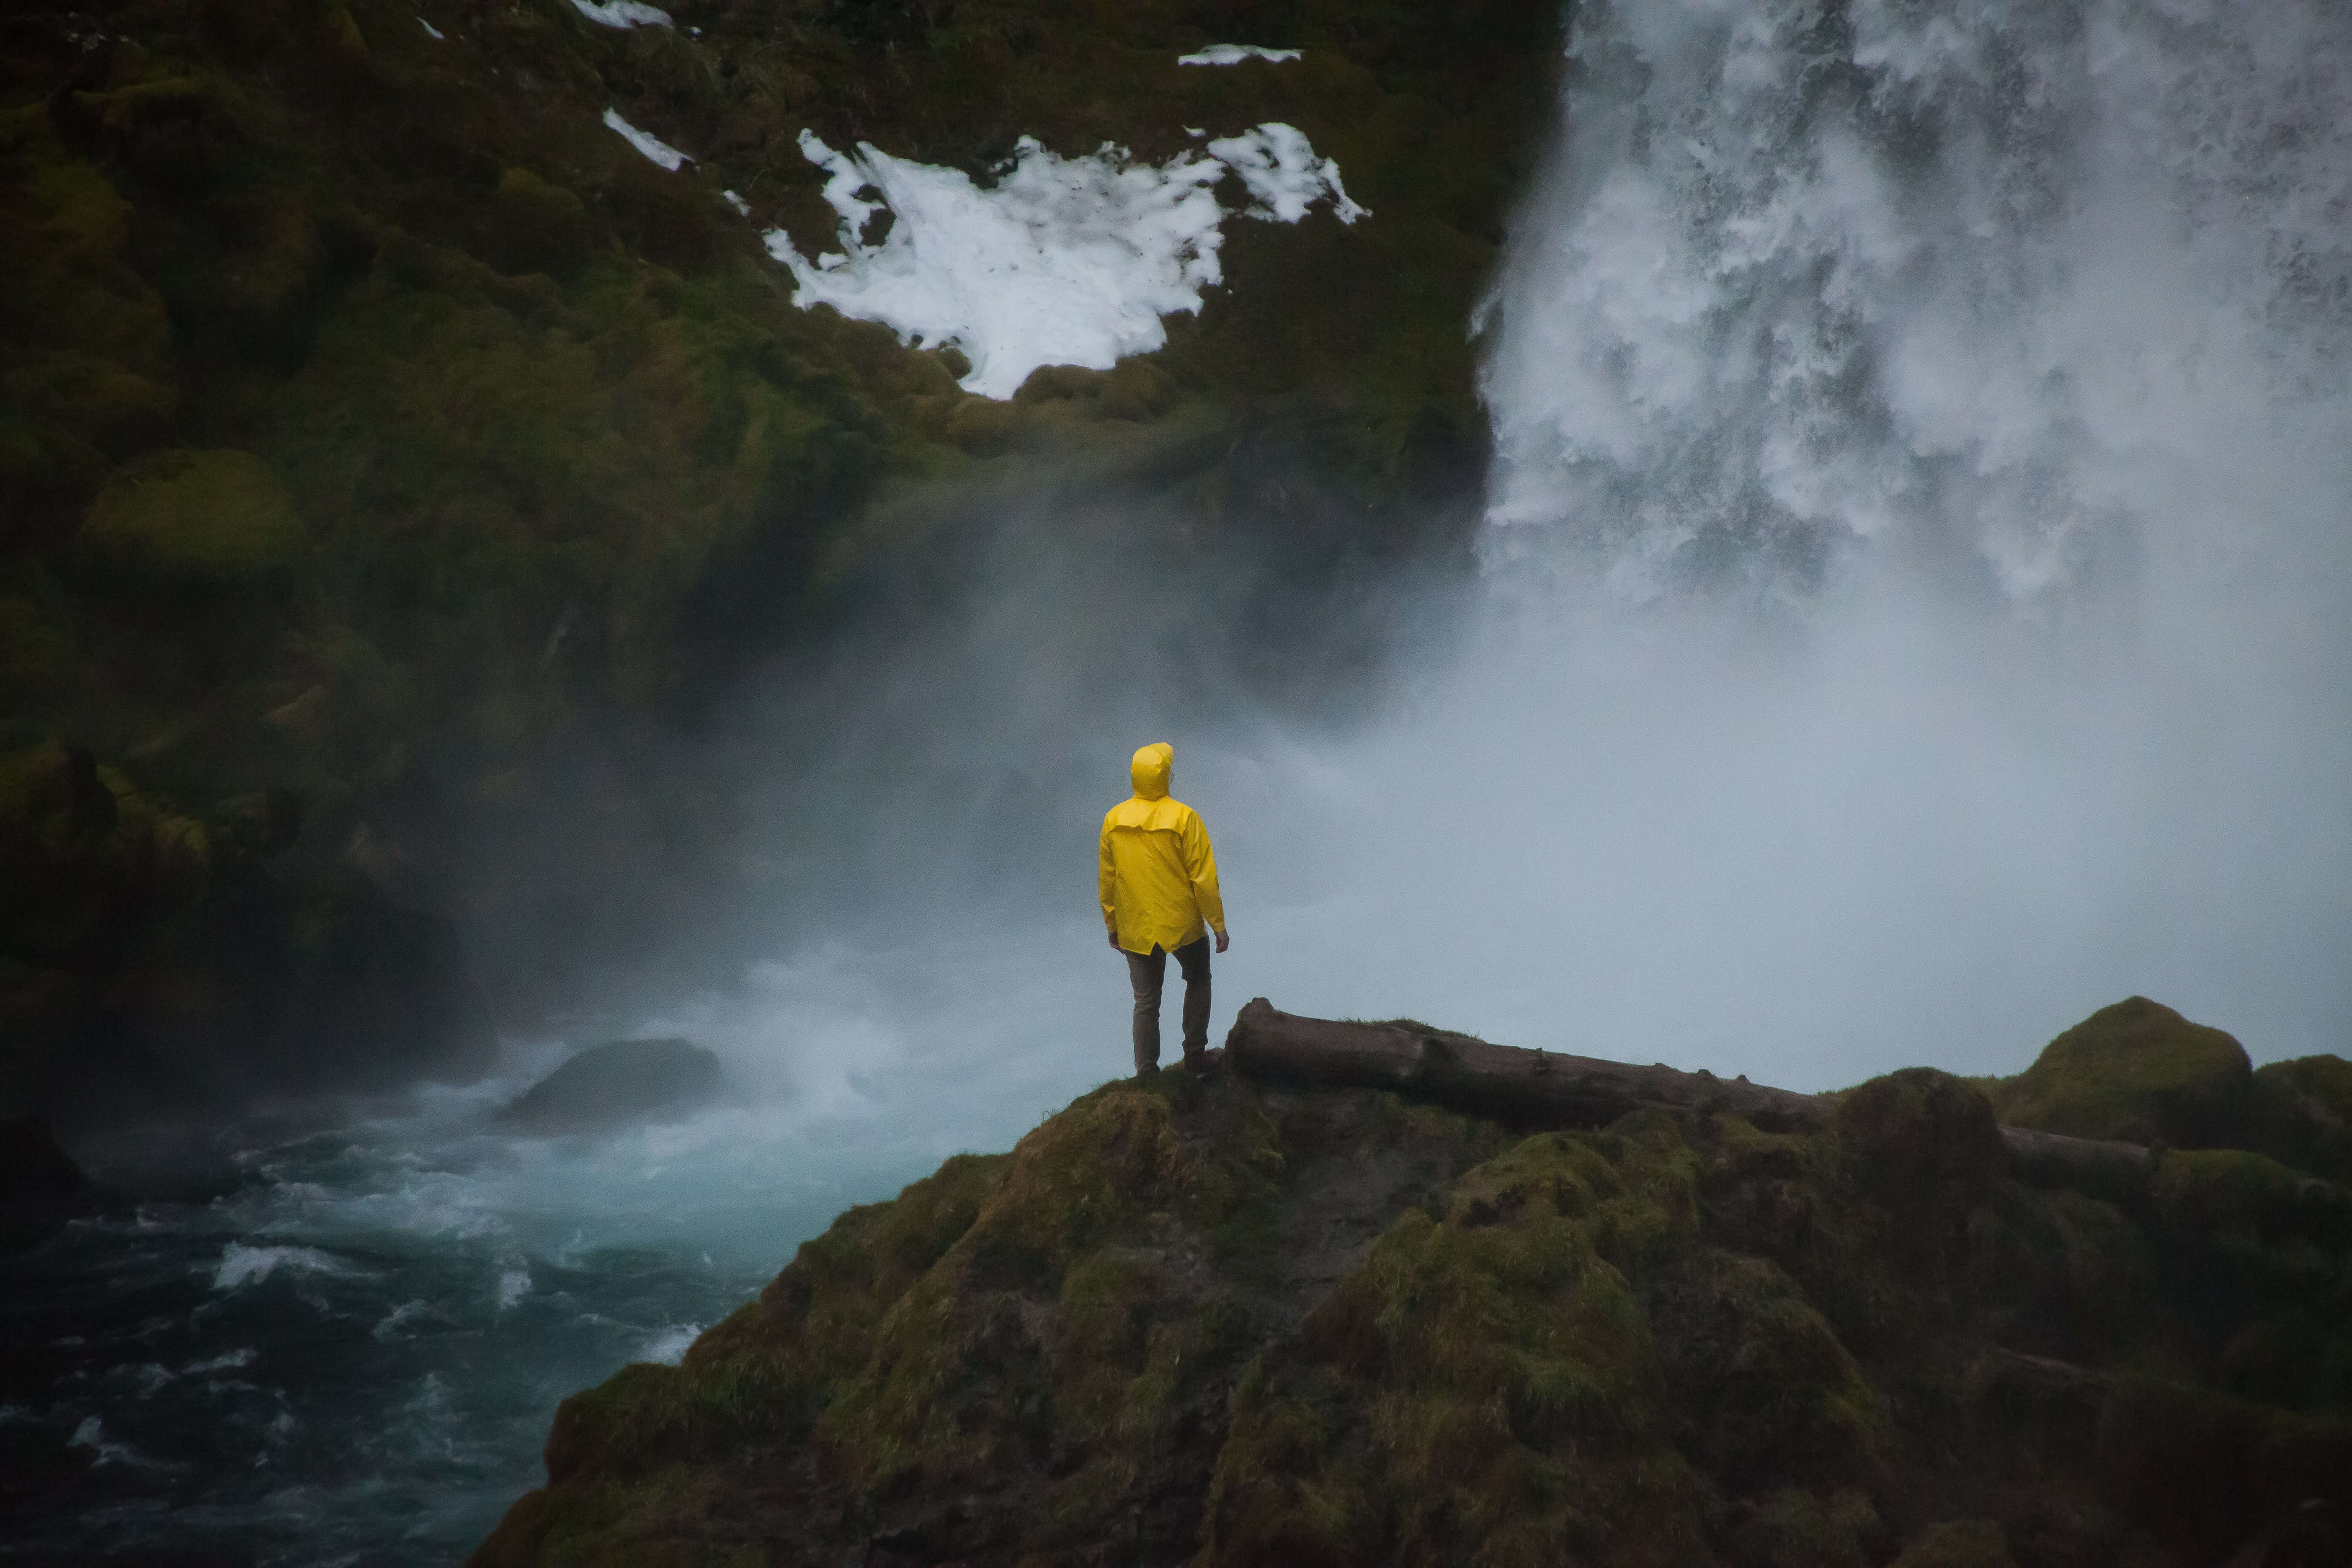 person in yellow coat standing near waterfalls during daytime